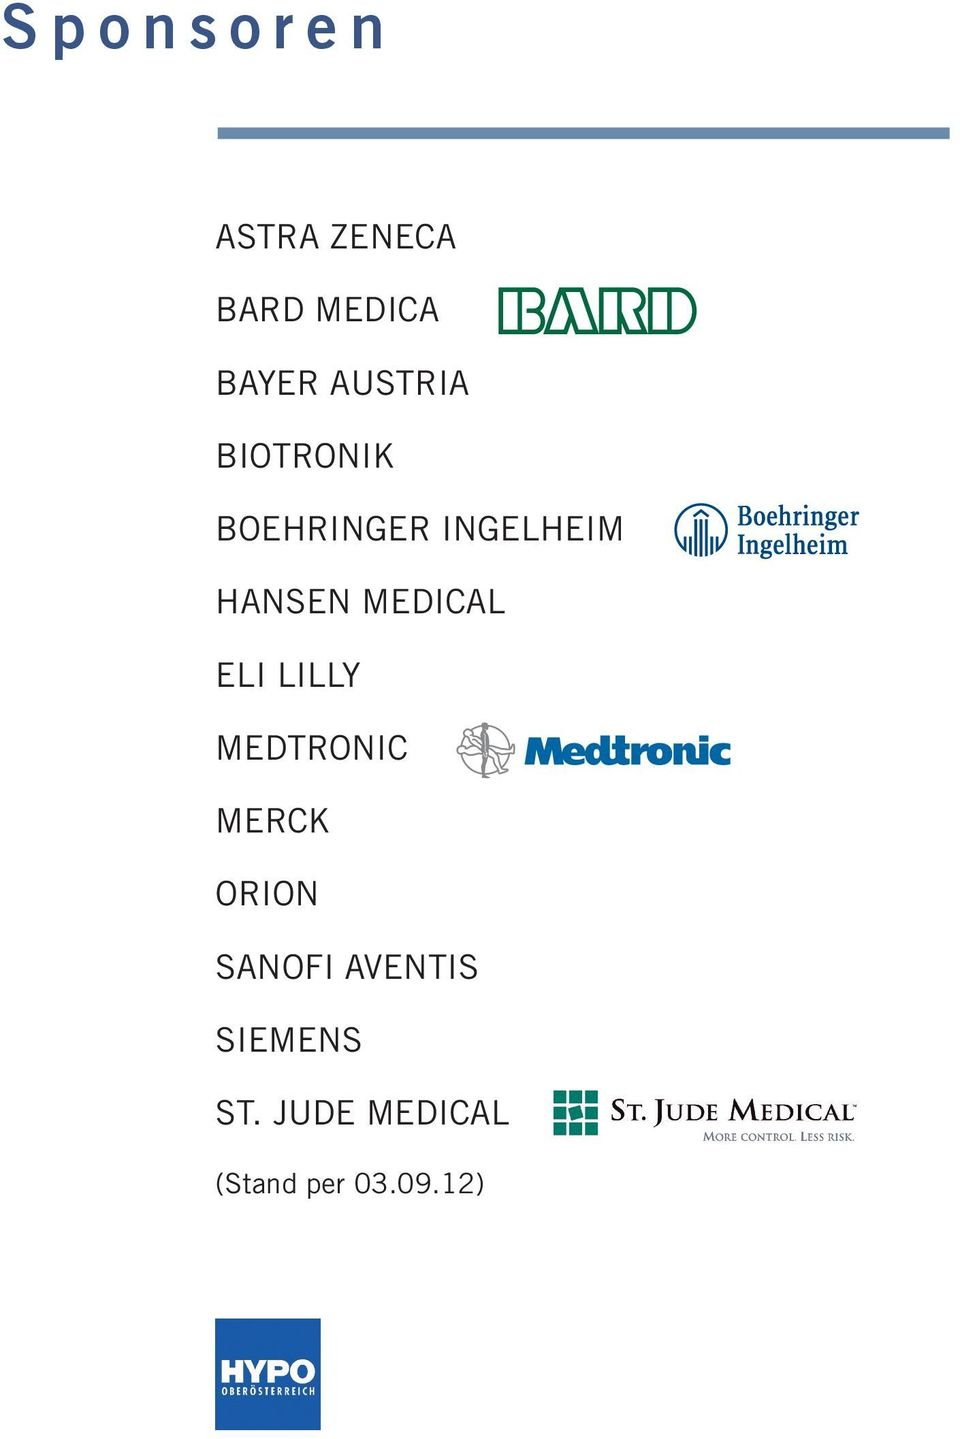 MEDICAL ELI LILLY MEDTRONIC MERCK ORION SANOFI